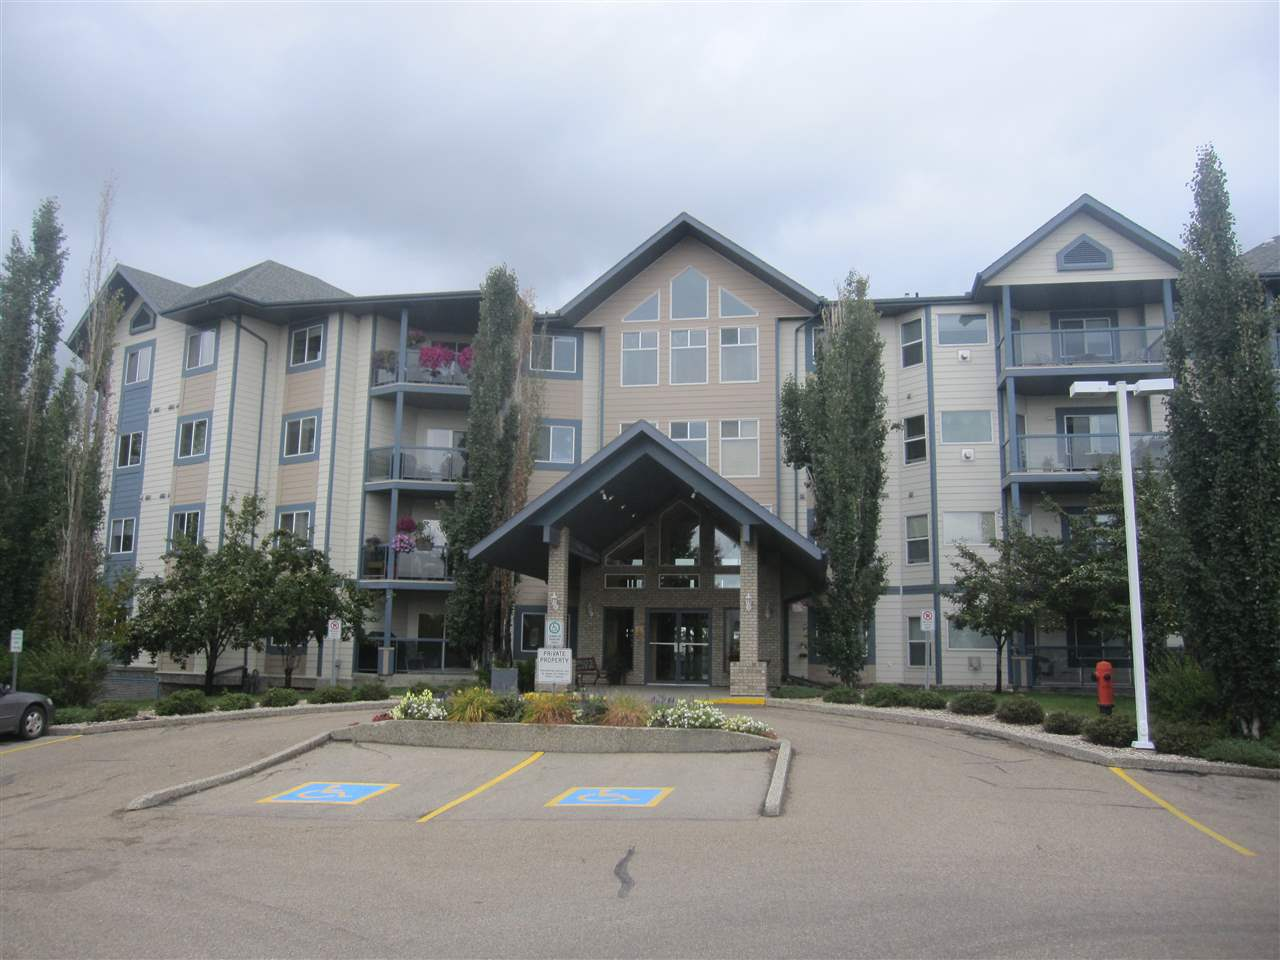 Prime top floor unit with nice view of the lake and easy access to Foxhaven Wetlands and Heritage Trail System. Unique location with no neighbors above and on one side only. Nice open plan with upgraded maple kitchen with easy close hardware, beautiful quartz countertops and quality floor covering. Spacious living room hilited with a cozy gas fireplace(circulating fan) and high end berber carpet. big master has walk-thru closet and 3 pce. ensuite. Good size second bedroom. Full bathroom with soaker tub. Insuite laundry with good storage space. TWO TITLED UNDERGROUND HEATED STALLS, ONE WITH STORAGE CAGE. Building is exceptionally  well maintained and managed. Amenities include library/reading room (4th floor), games room with pool table (3rd floor), party room and exercise room (1st floor). This unit shows well and is in move in condition.